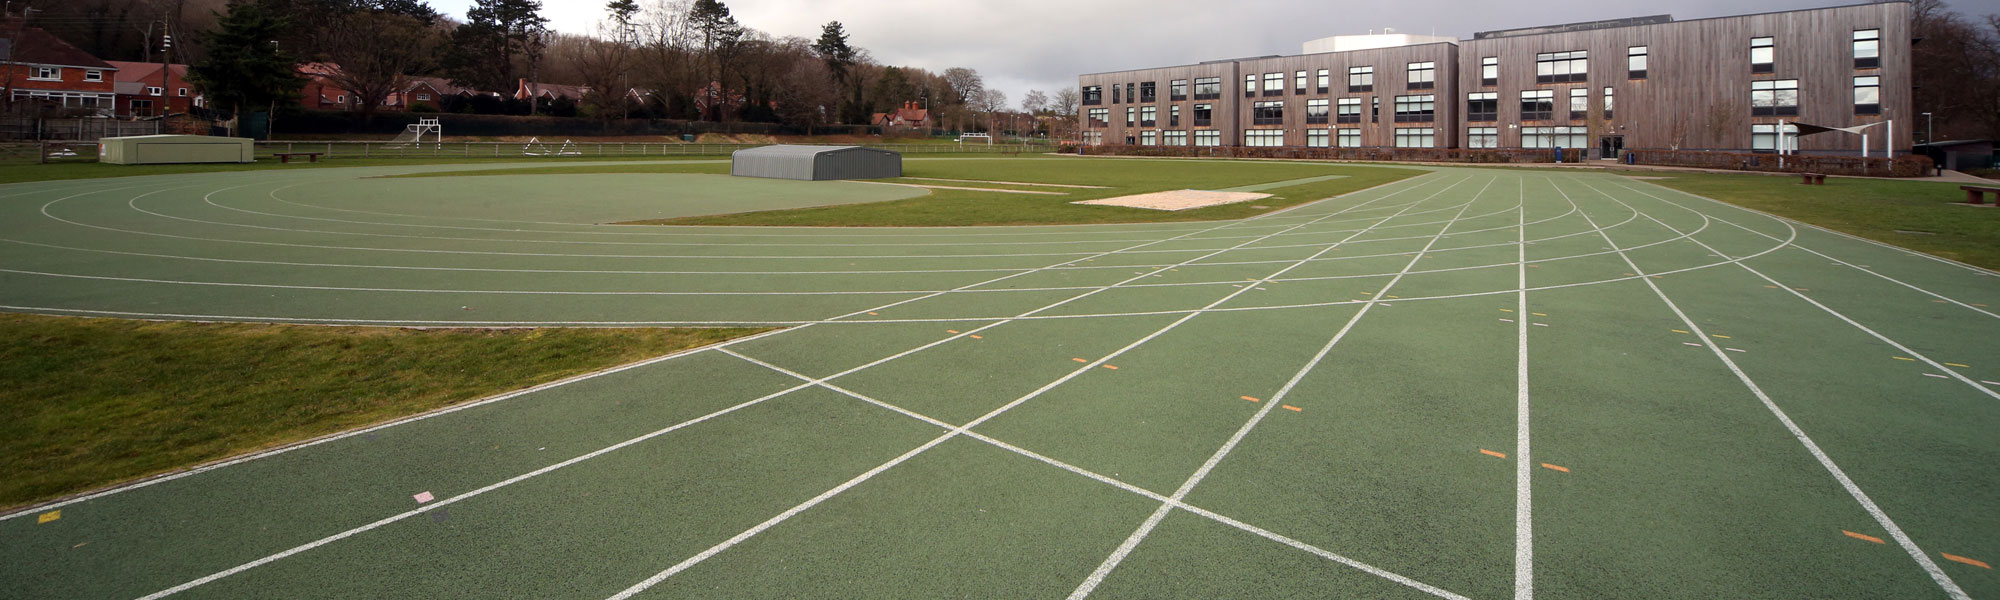 Outdoor school athletics track